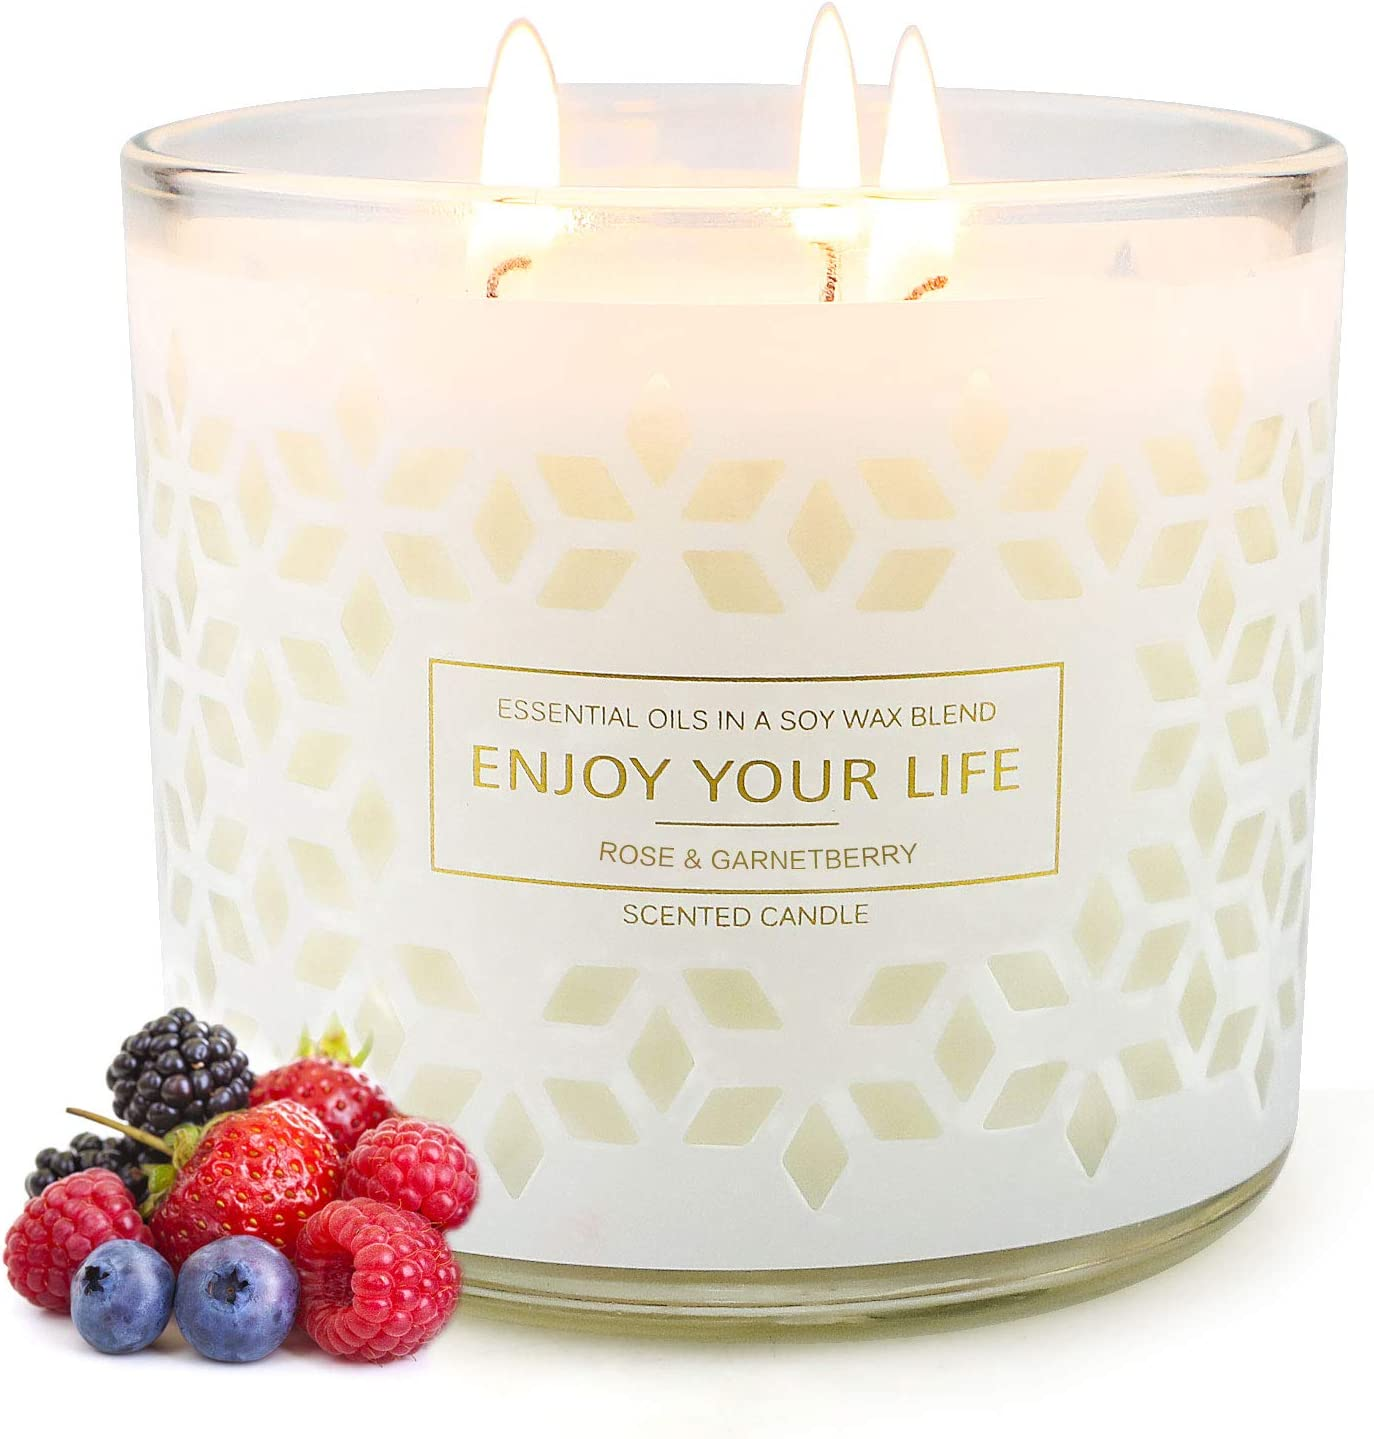 Scented Candles for Home Scented 14.5oz Large Aromatherapy Candles 125 Hour Long Lasting Fragrances Soy Candle for Home Decor Valentines Day Gifts for Her 3 Wick Jar Candle with Lid Berries Sweet Home